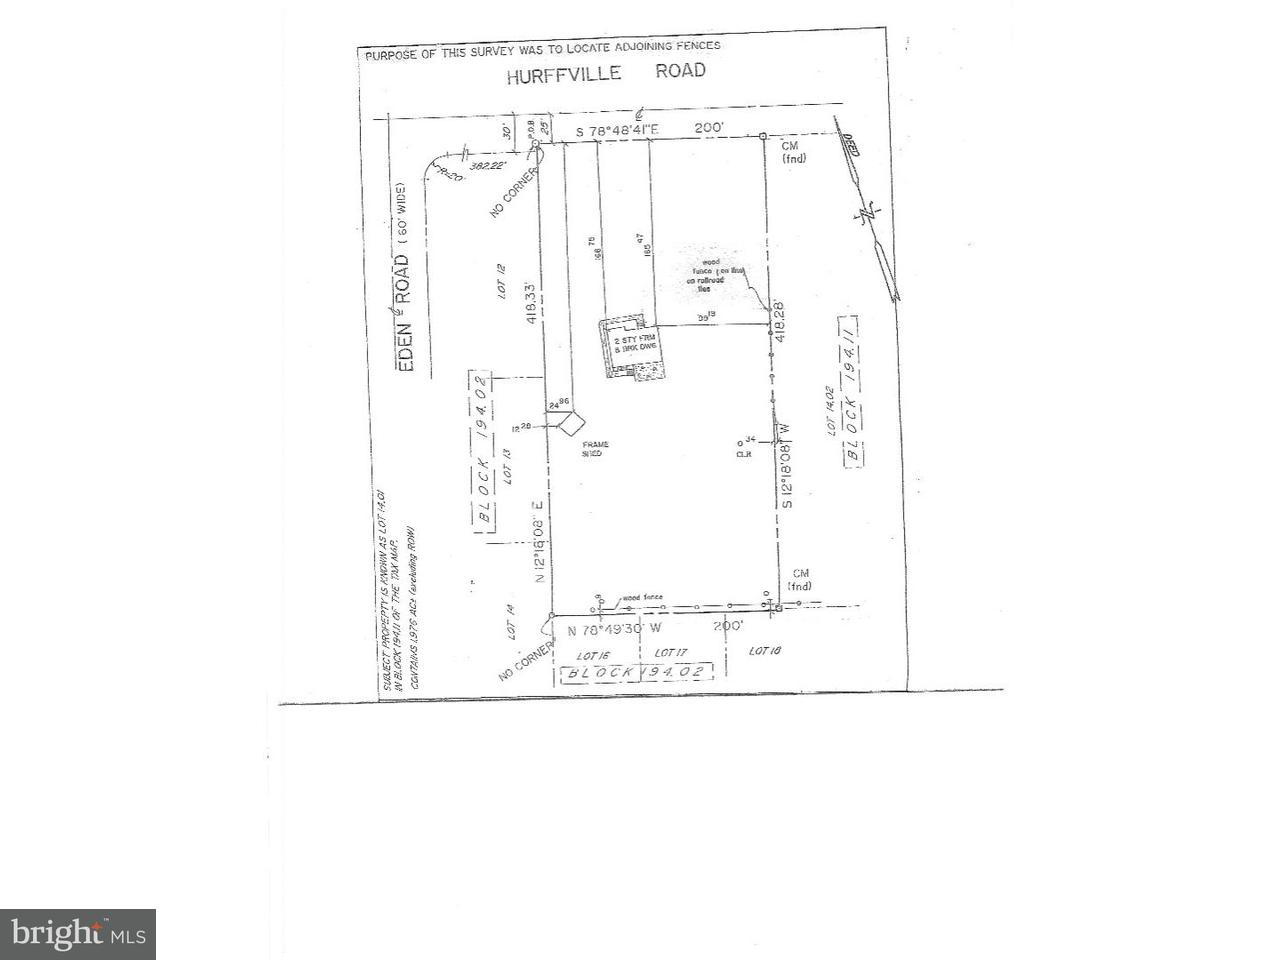 Single Family Home for Sale at 158 HURFFVILLE Road Turnersville, New Jersey 08012 United States